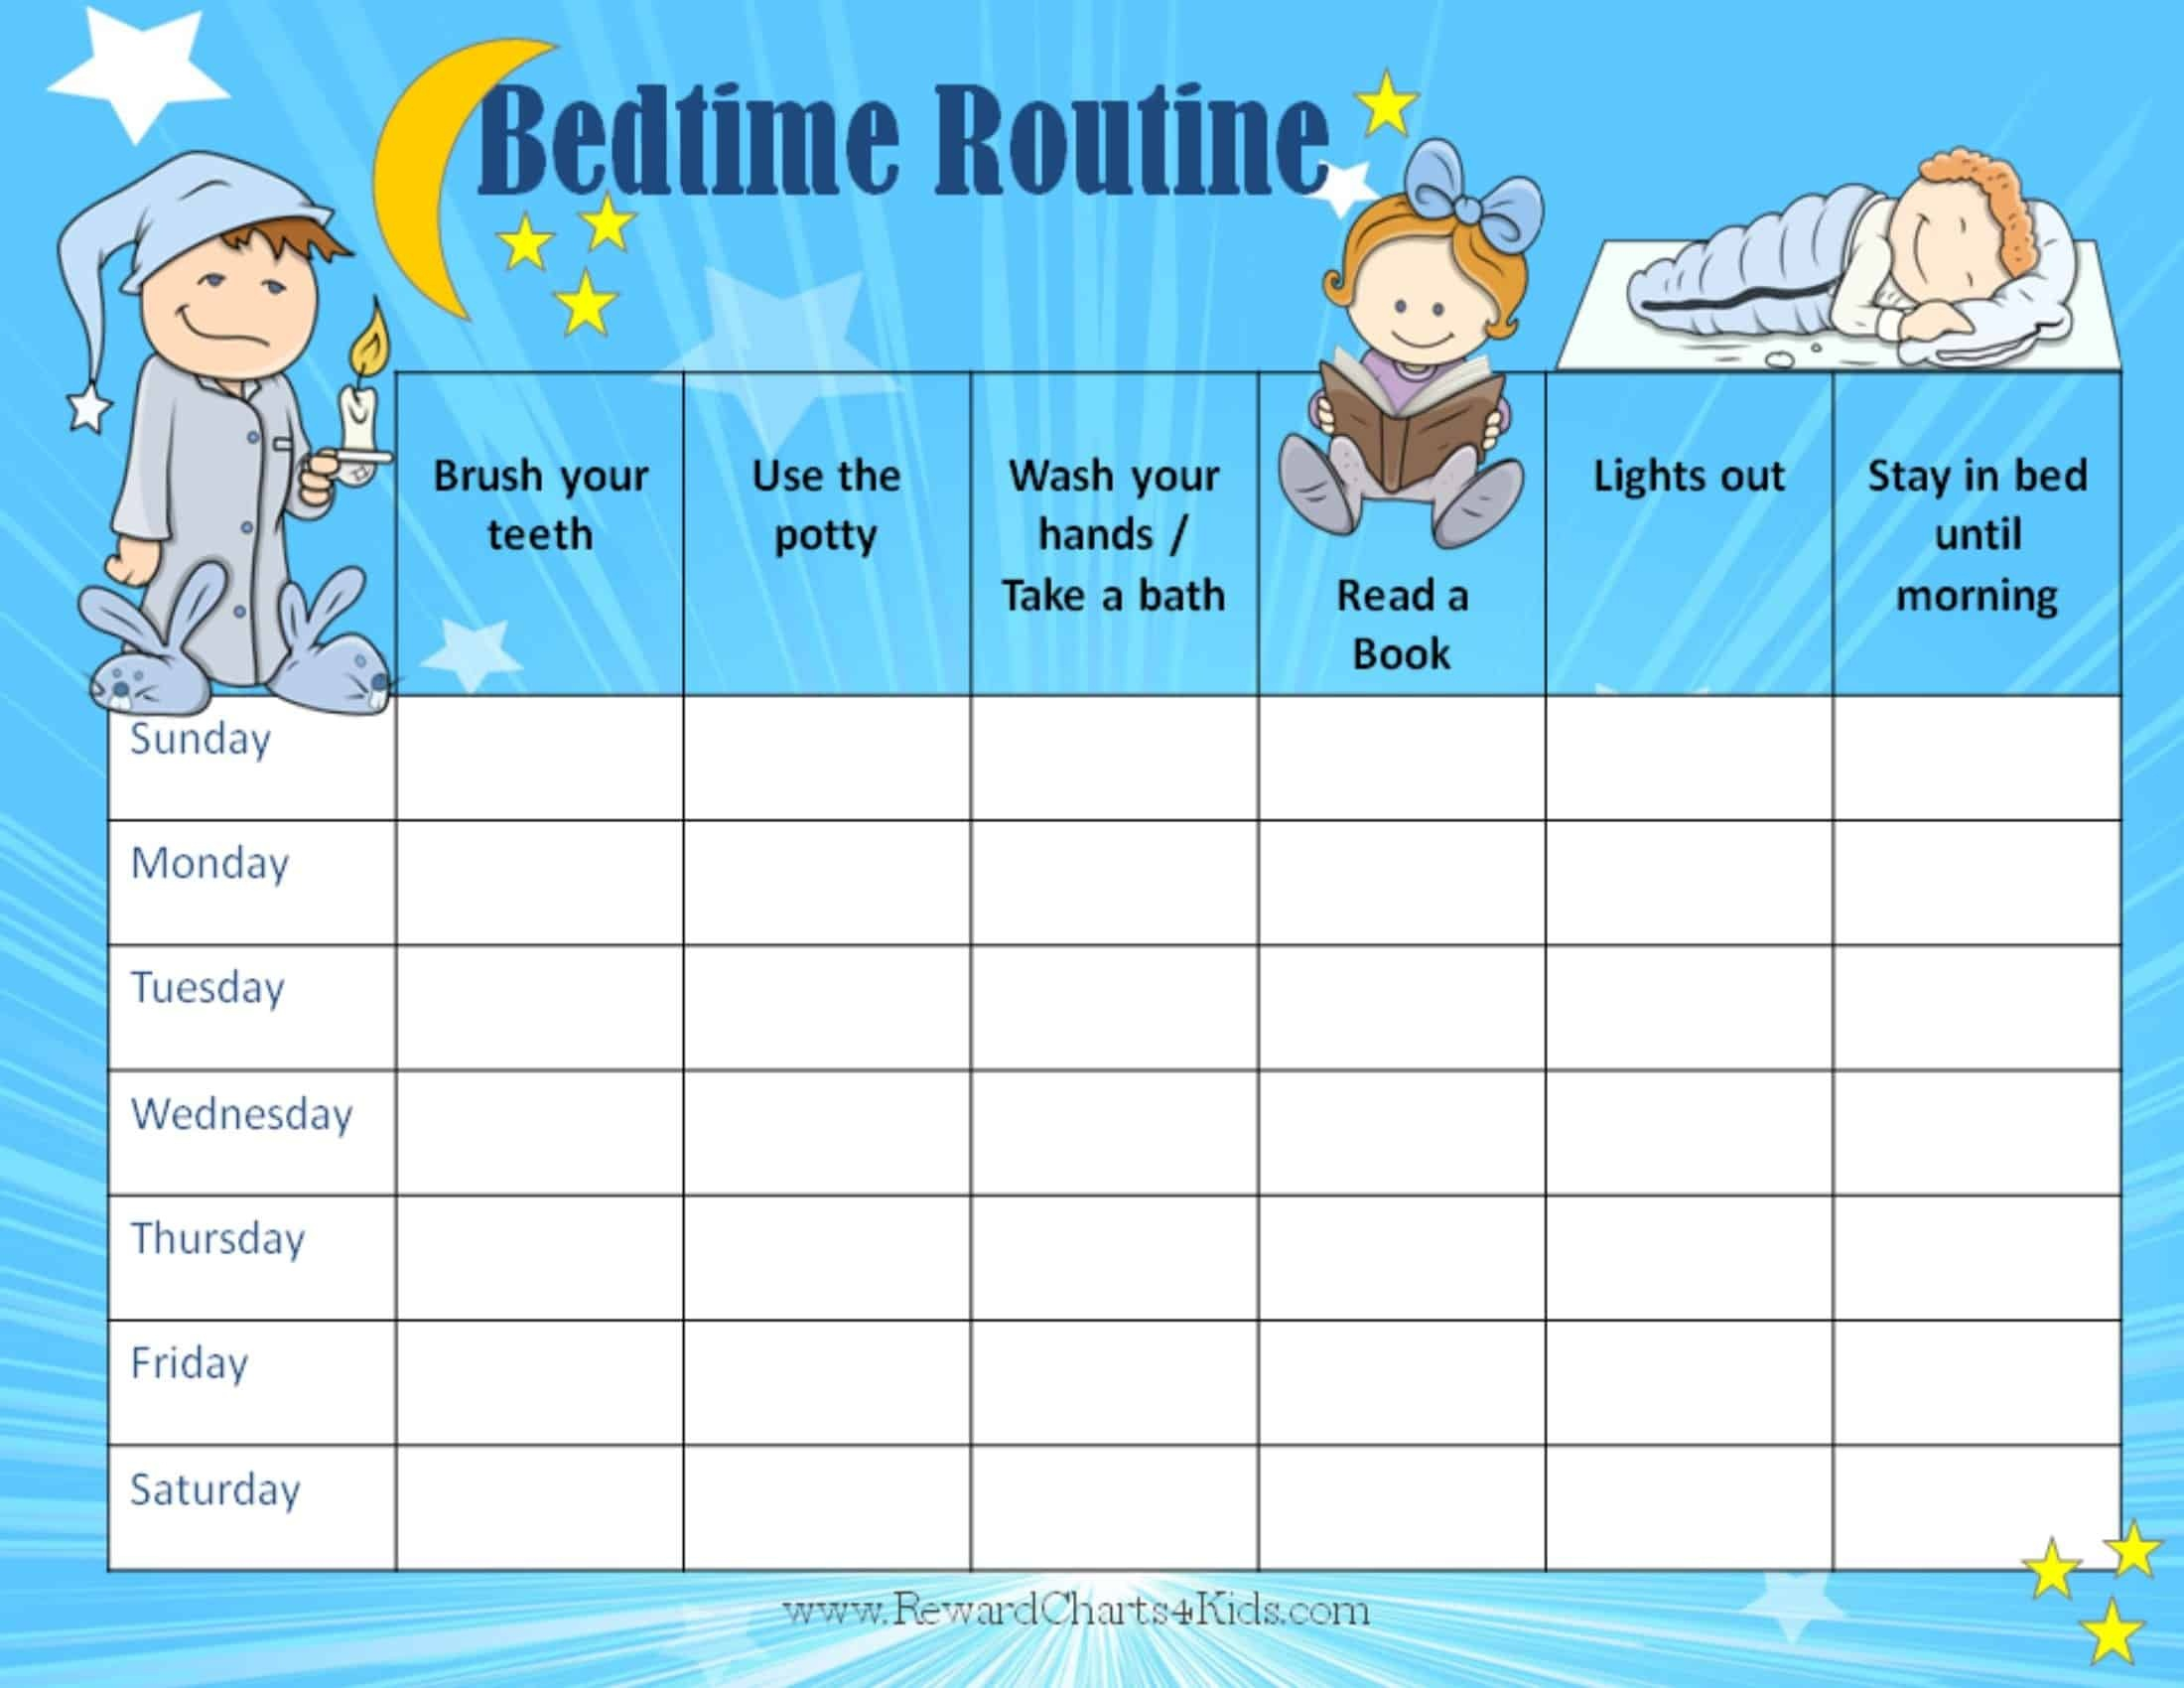 Free Printable Bedtime Routine Chart | Customize Online Then Print - Free Printable Bedtime Routine Chart